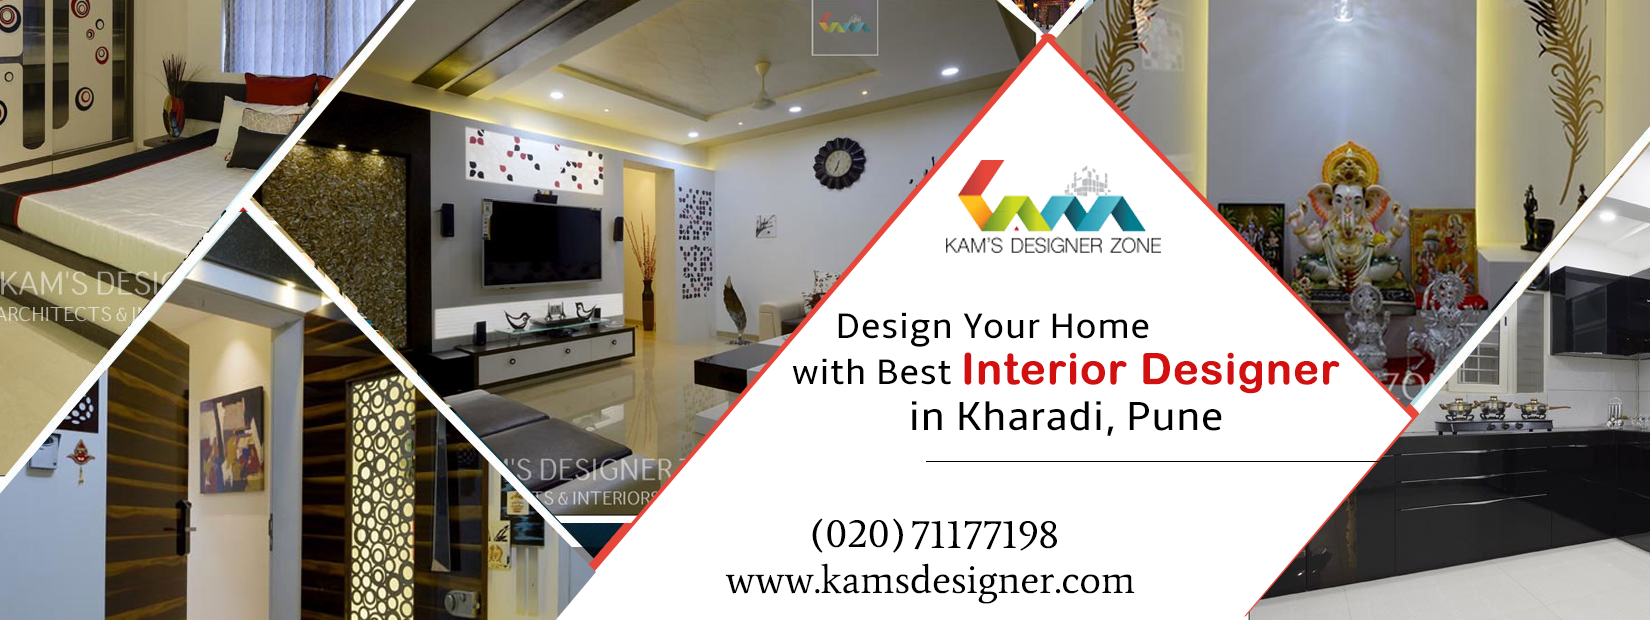 Design Your Home with Best Interior Designer in Kharadi, Pune